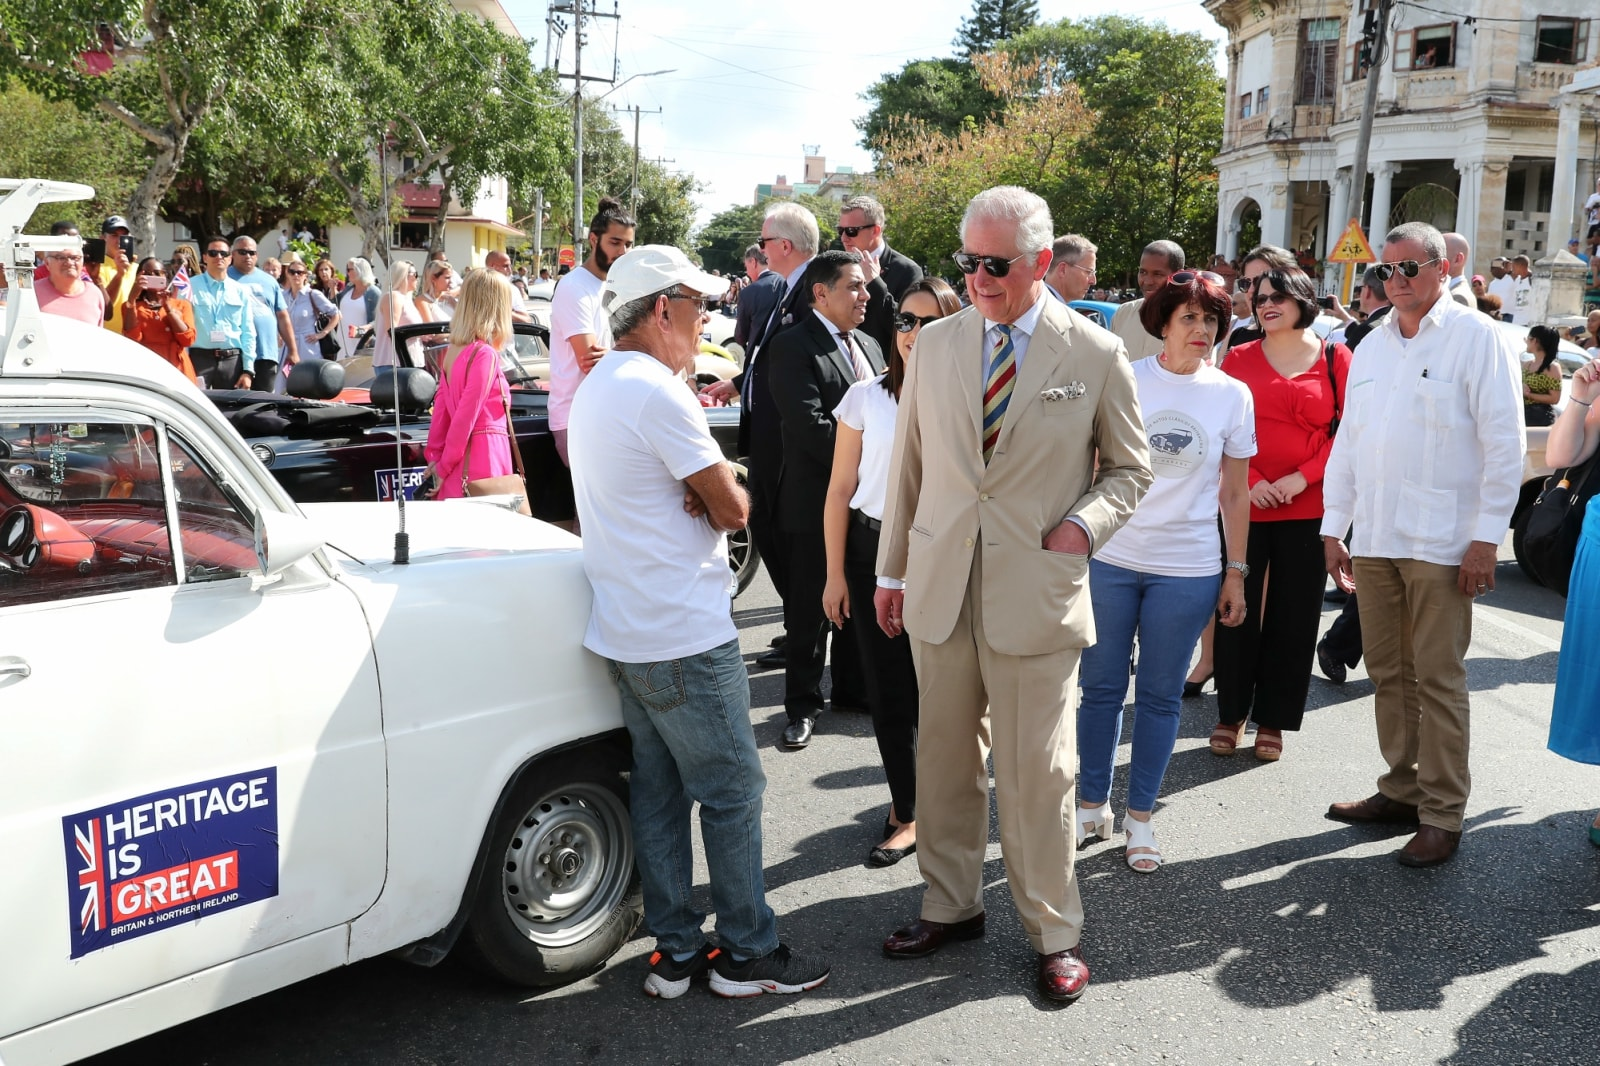 Britain's Prince Charles takes a tour during a British Classic Car event in Havana, Cuba March 26, 2019. Chris Jackson/Pool via REUTERS